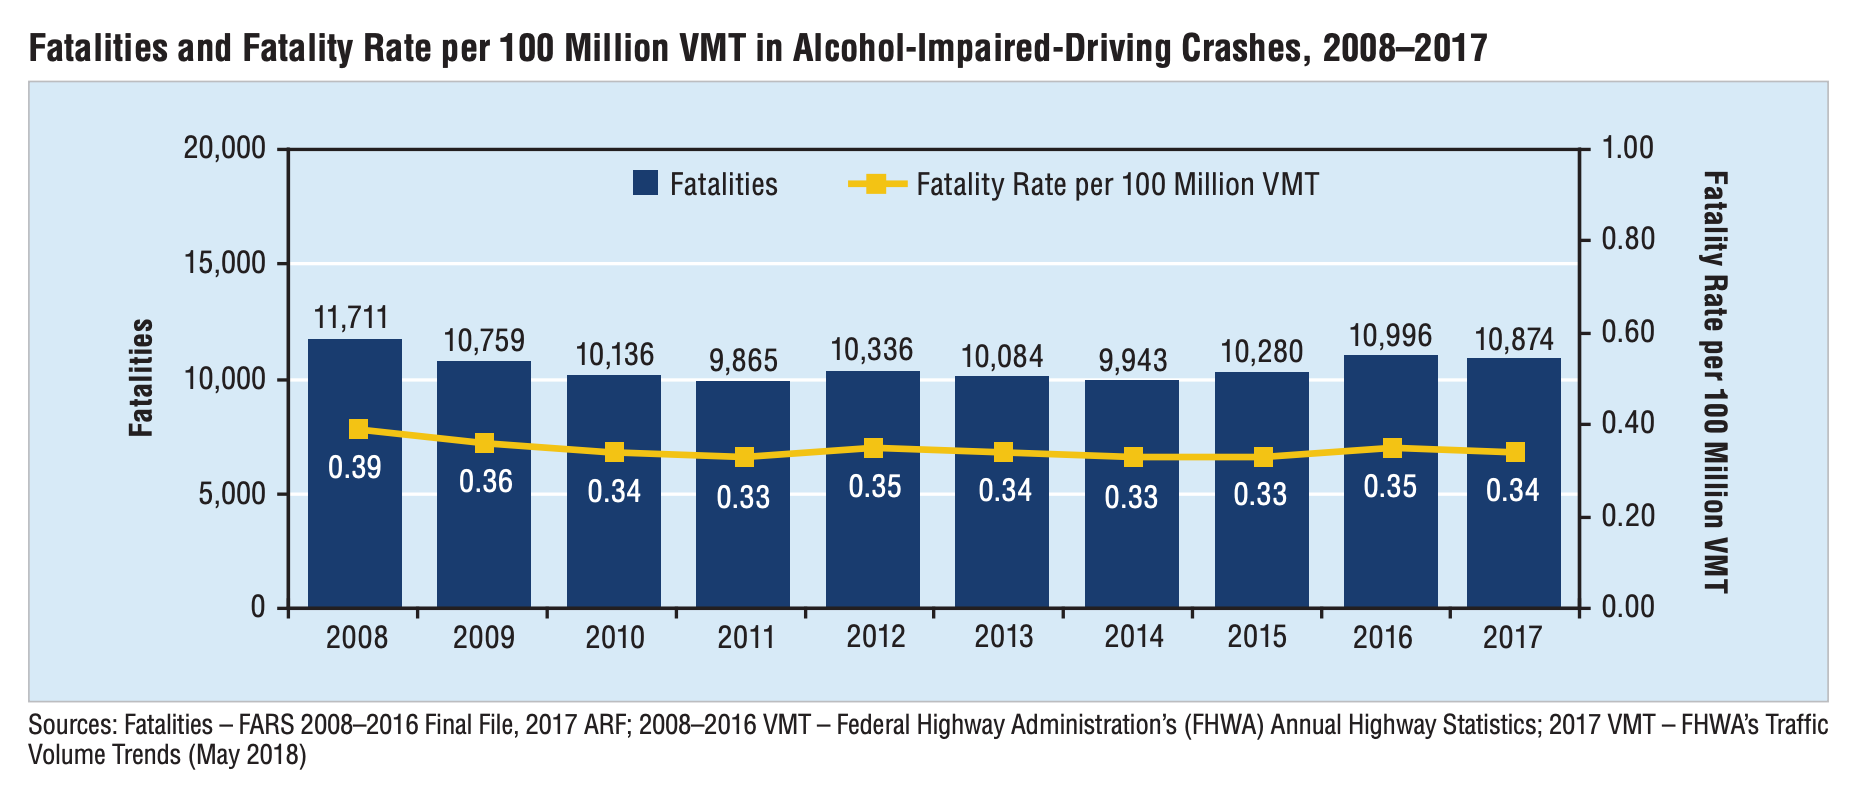 Fatalities in Alcohol-Impaired Driving Crashes